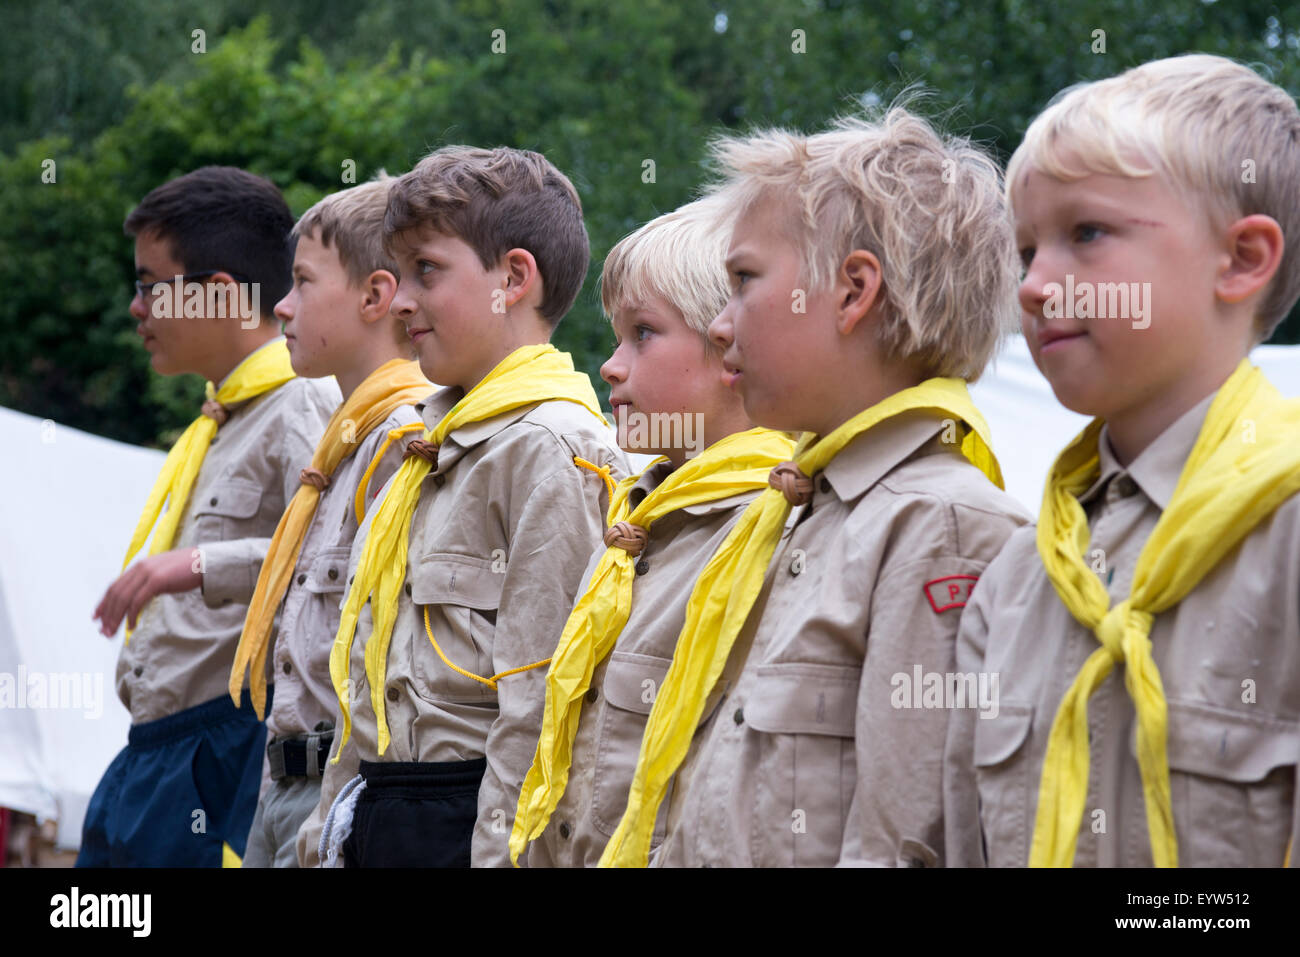 Boys Scout Campground, summer camp, tents, Roughing camping, adventure, children, Scout Movement, Scouting - Stock Image